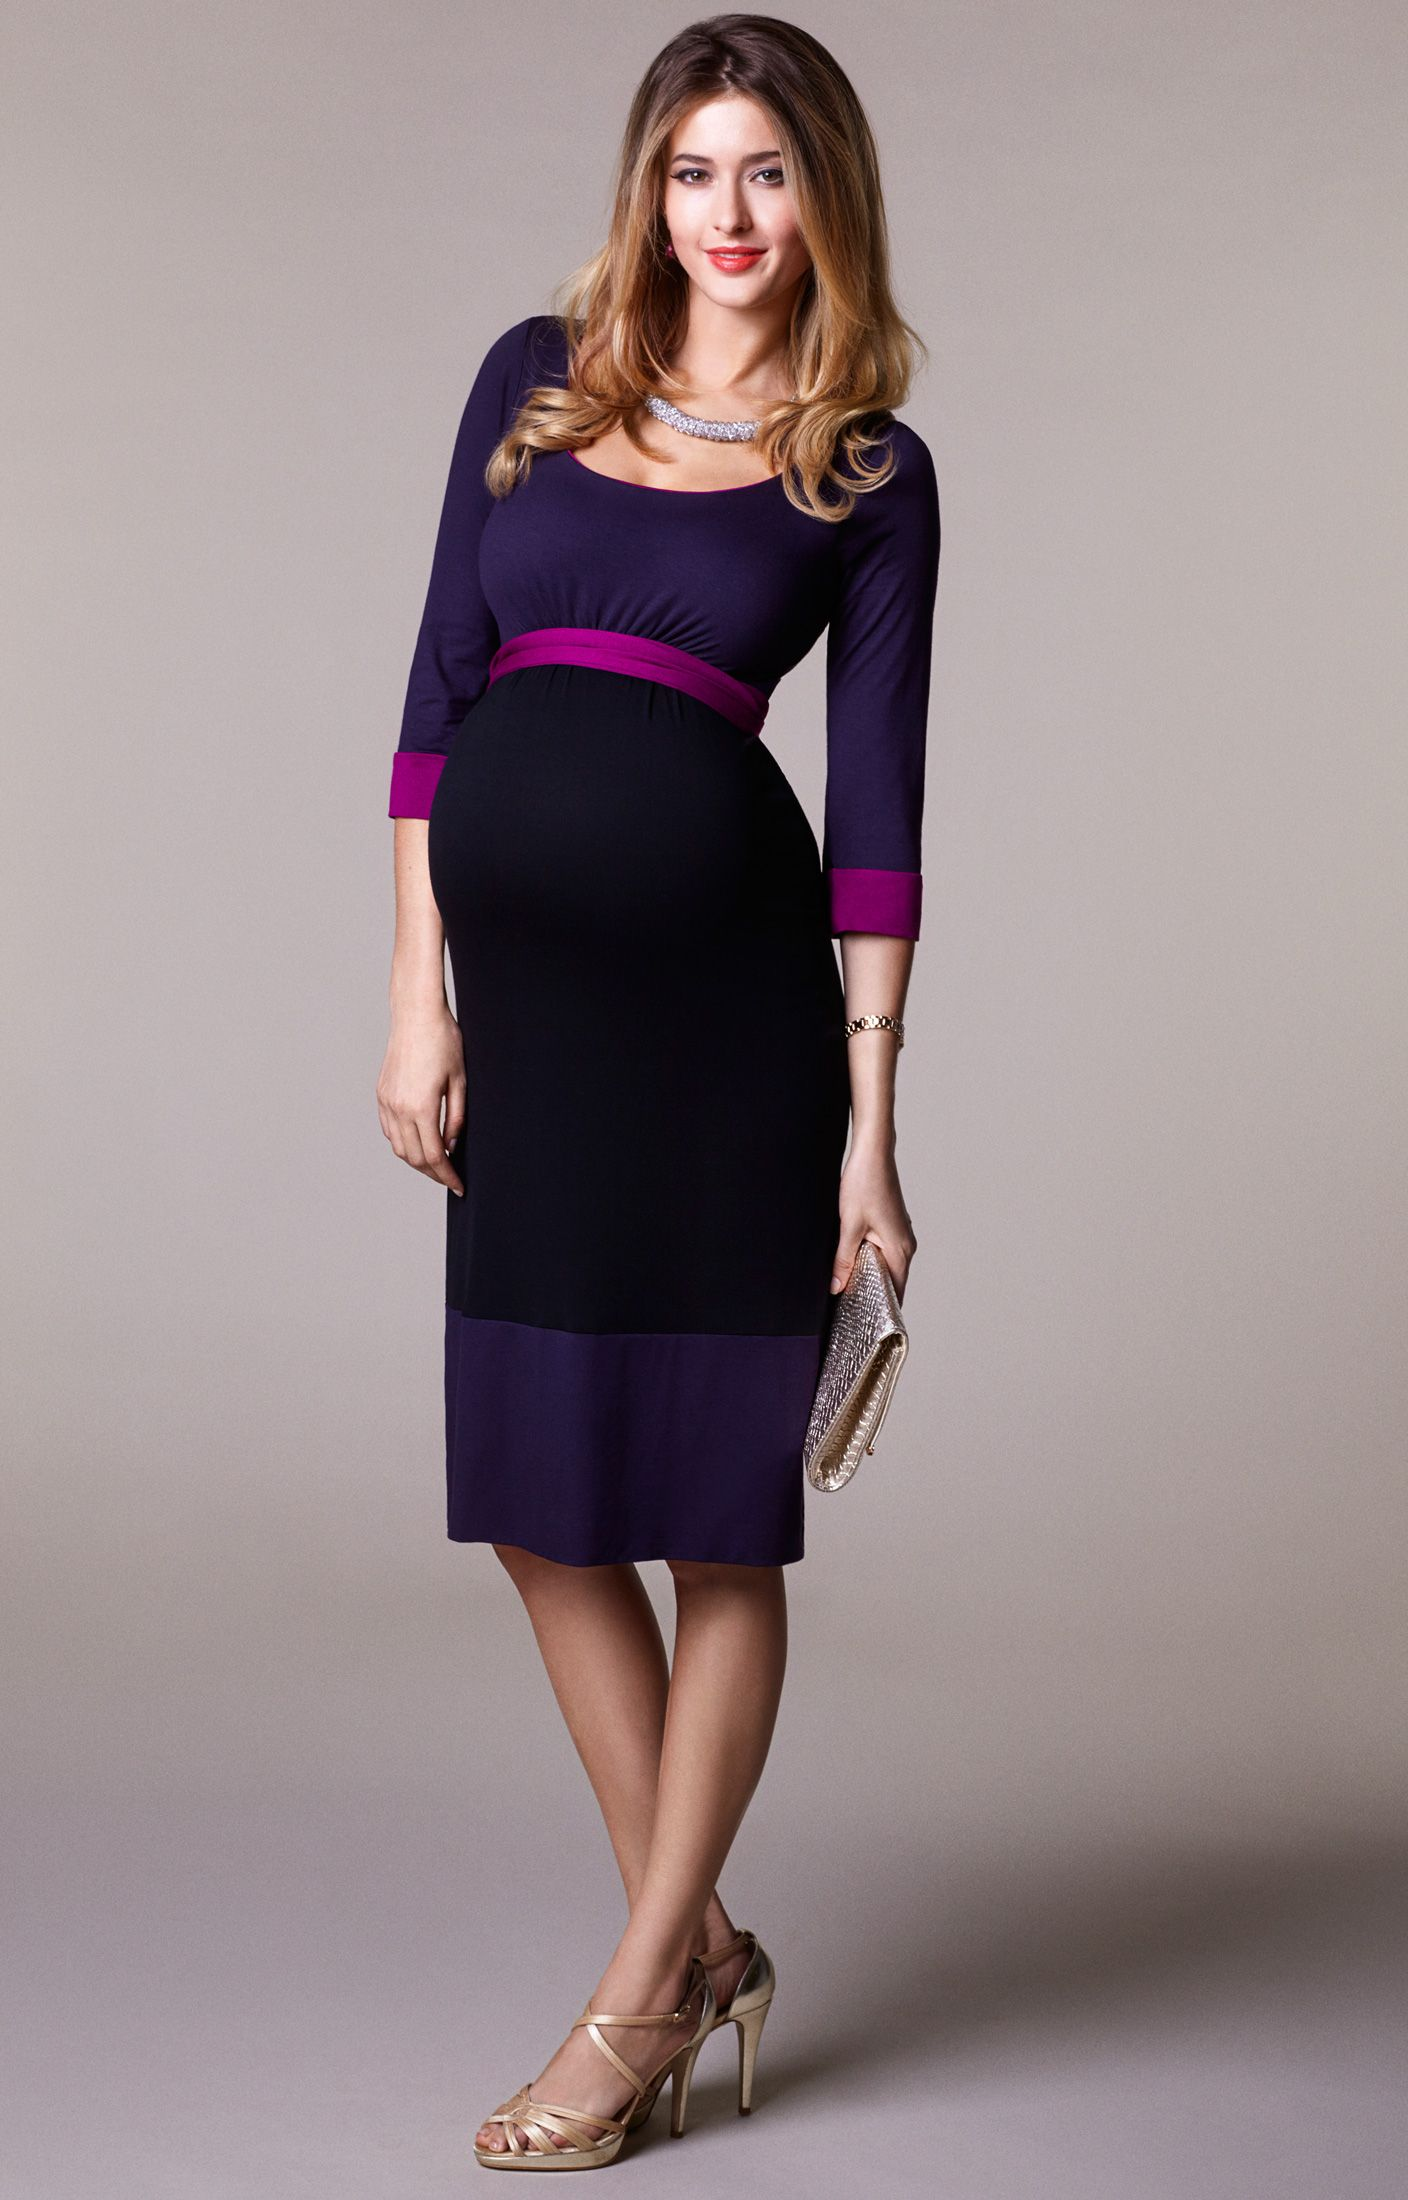 Colour block dress tiffany rose maternity dresses and color blocking colour block maternity dress purple by tiffany rose ombrellifo Image collections